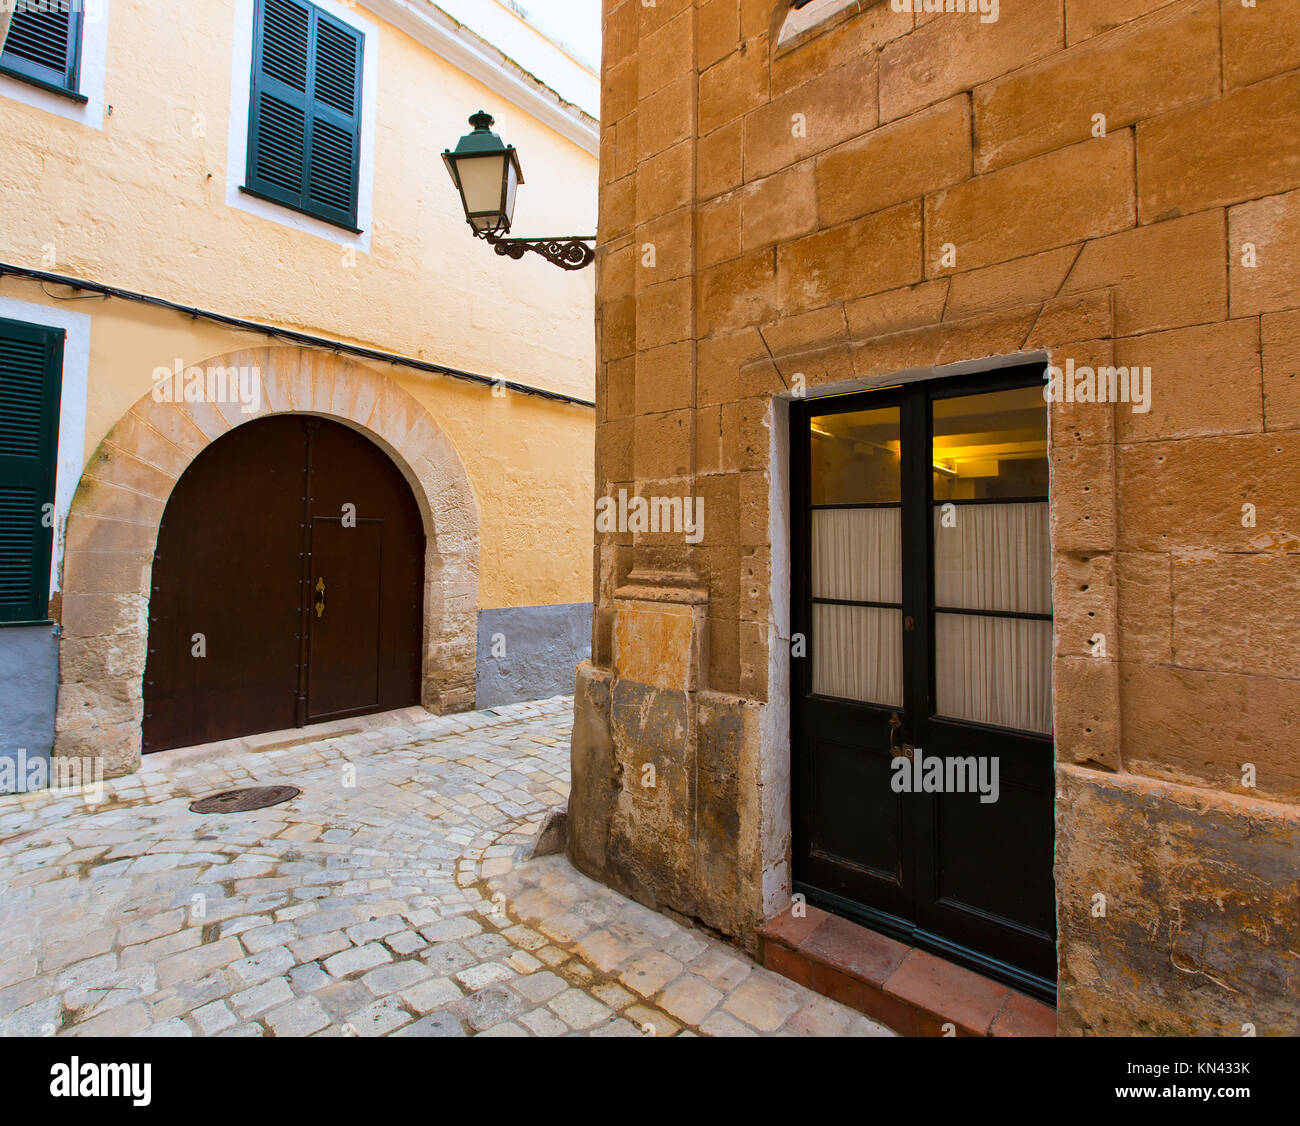 Menorca Ciutadella historical downtown at Balearic islands. - Stock Image